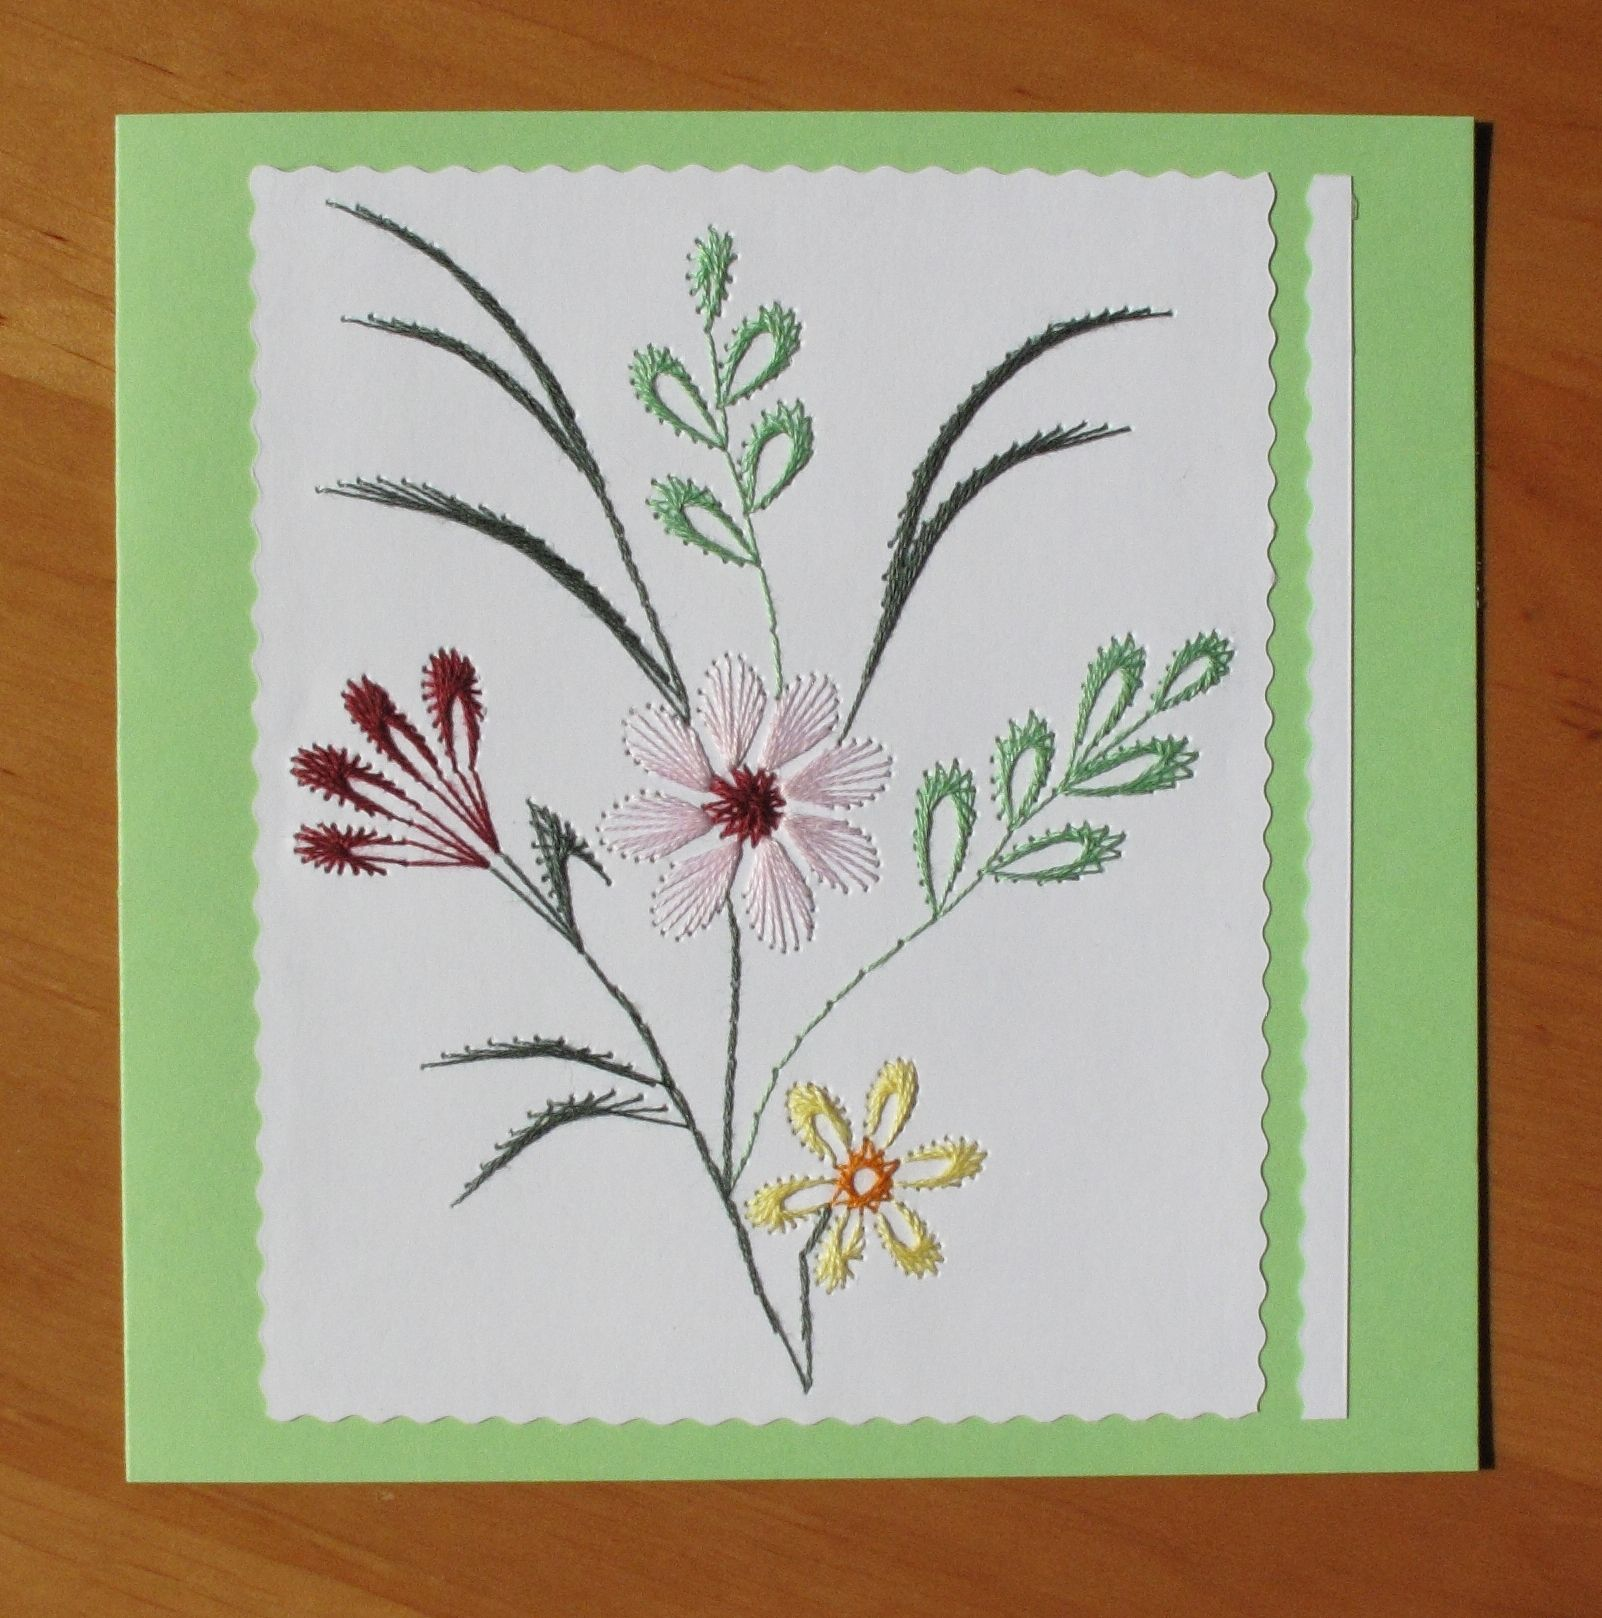 Pin by anna pilarska on my stiching cards pinterest embroidery paper embroidery flower embroidery embroidery ideas sewing cards craft cards cards diy handmade cards card patterns stitch patterns kristyandbryce Image collections